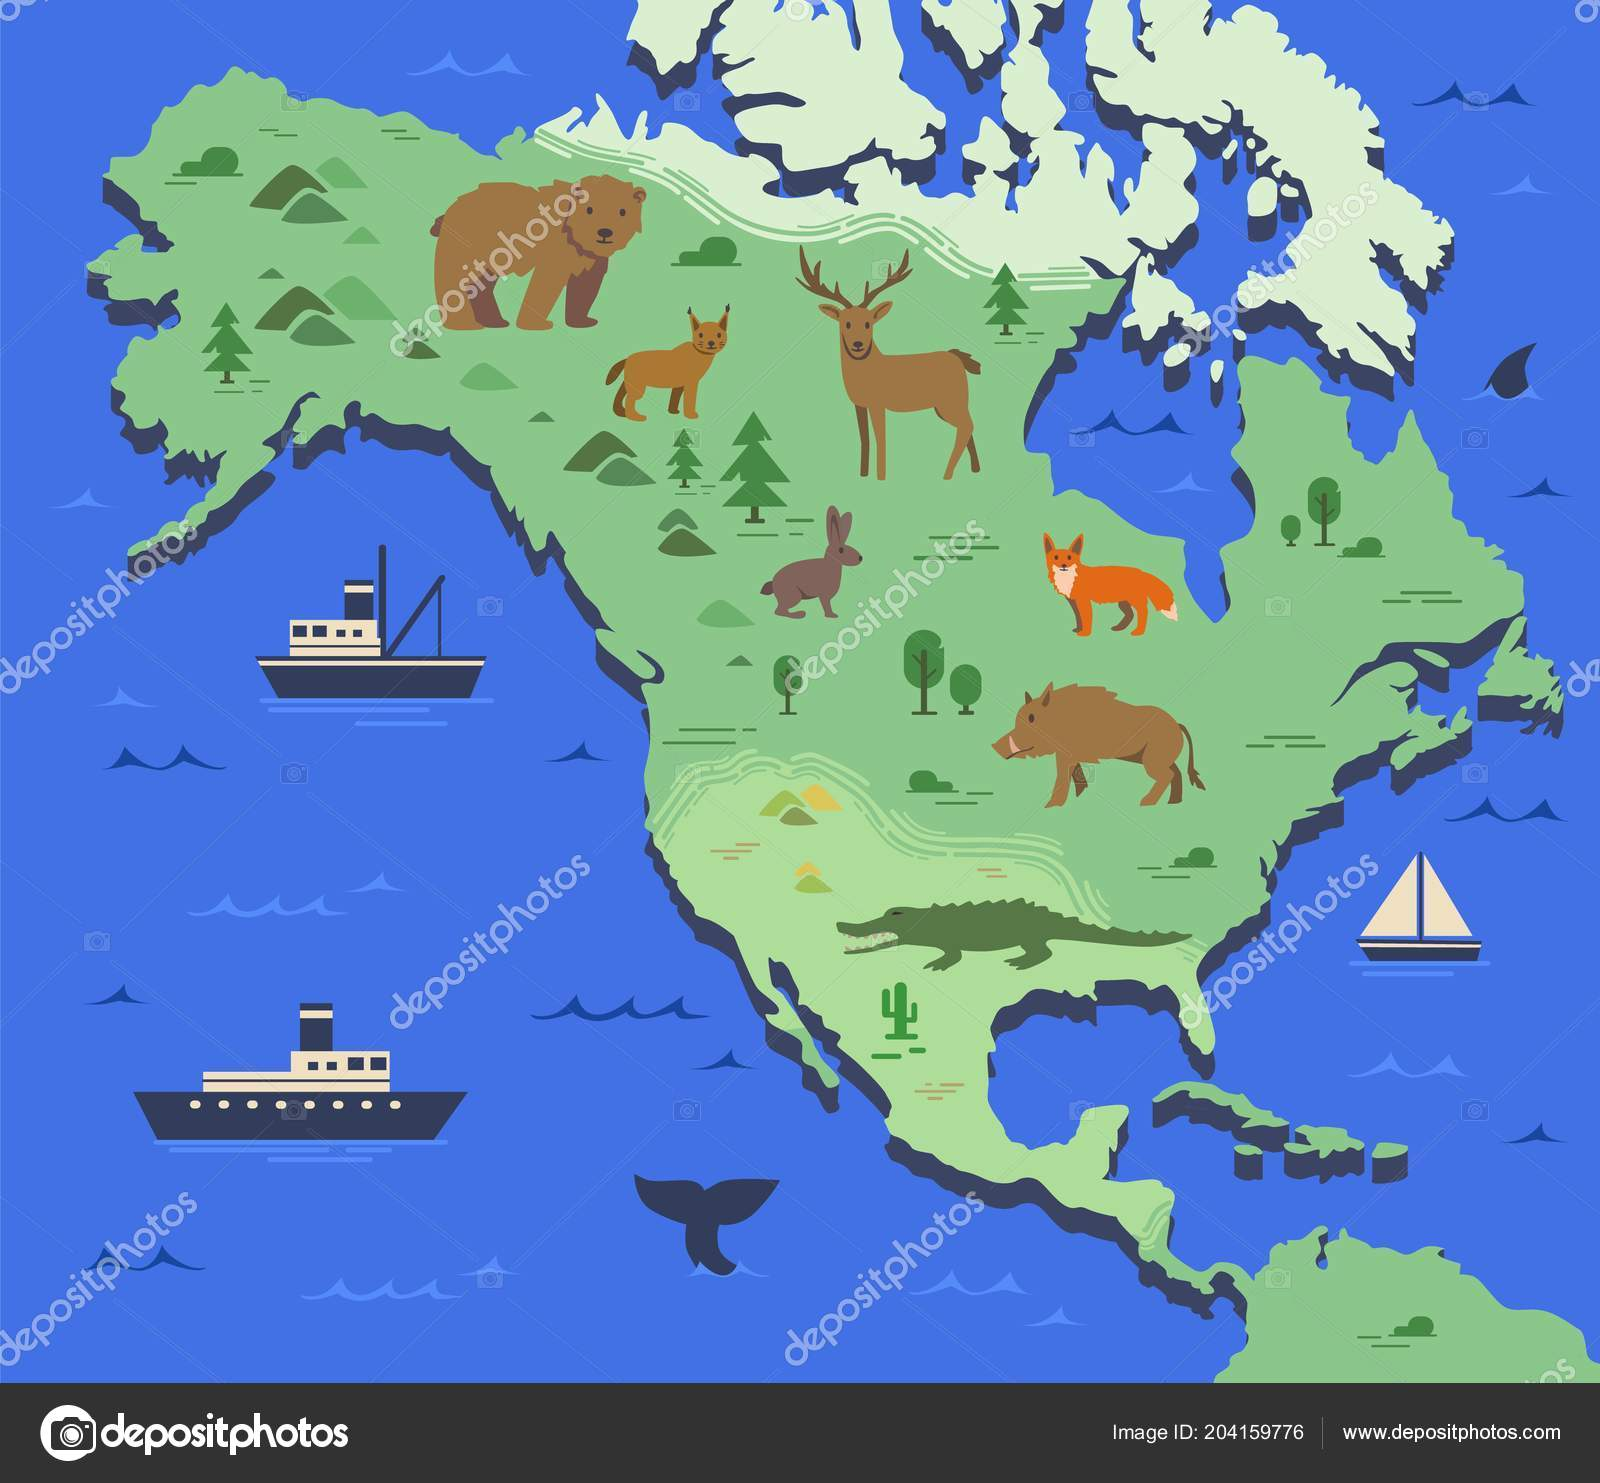 Geographical Map Of America.Stylized Map Of North America With Indigenous Animals And Nature